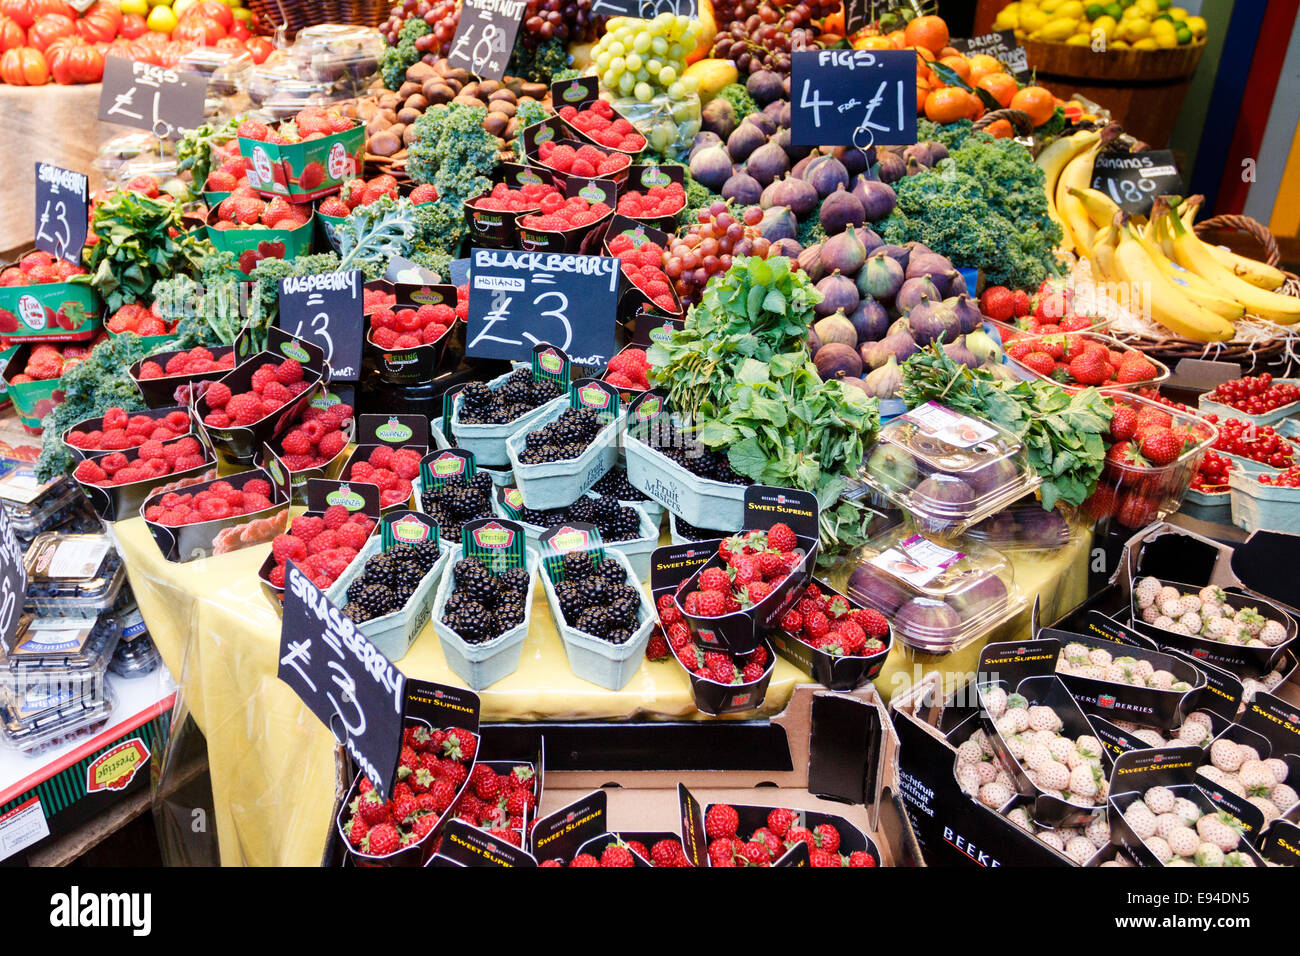 Selection of different fruit on a market stall, Borough Market, London, England, UK - Stock Image